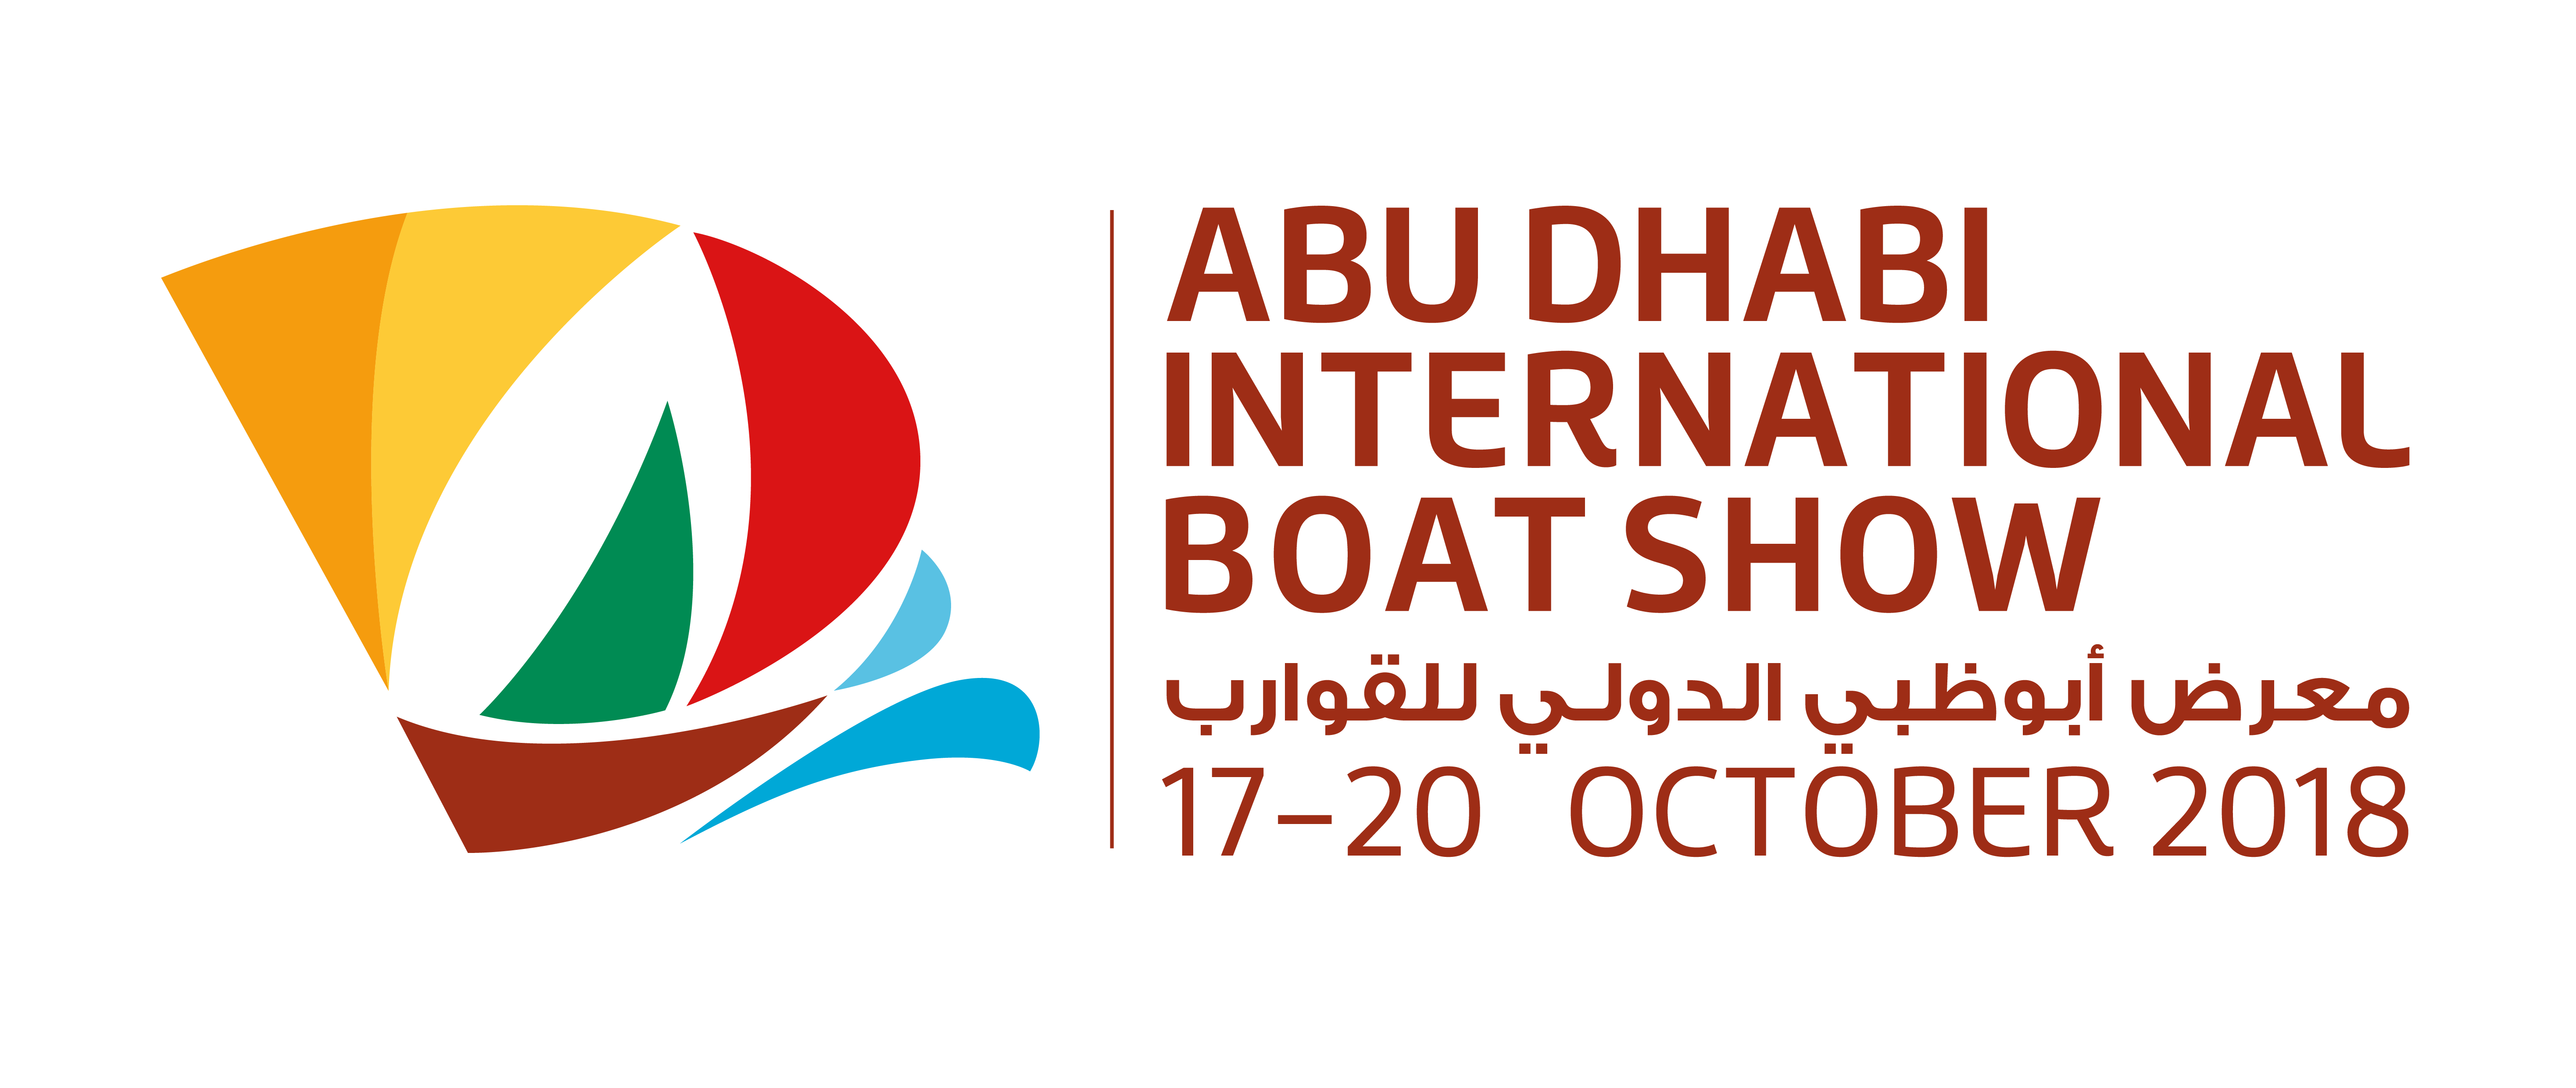 Abu Dhabi International Boat Show.png